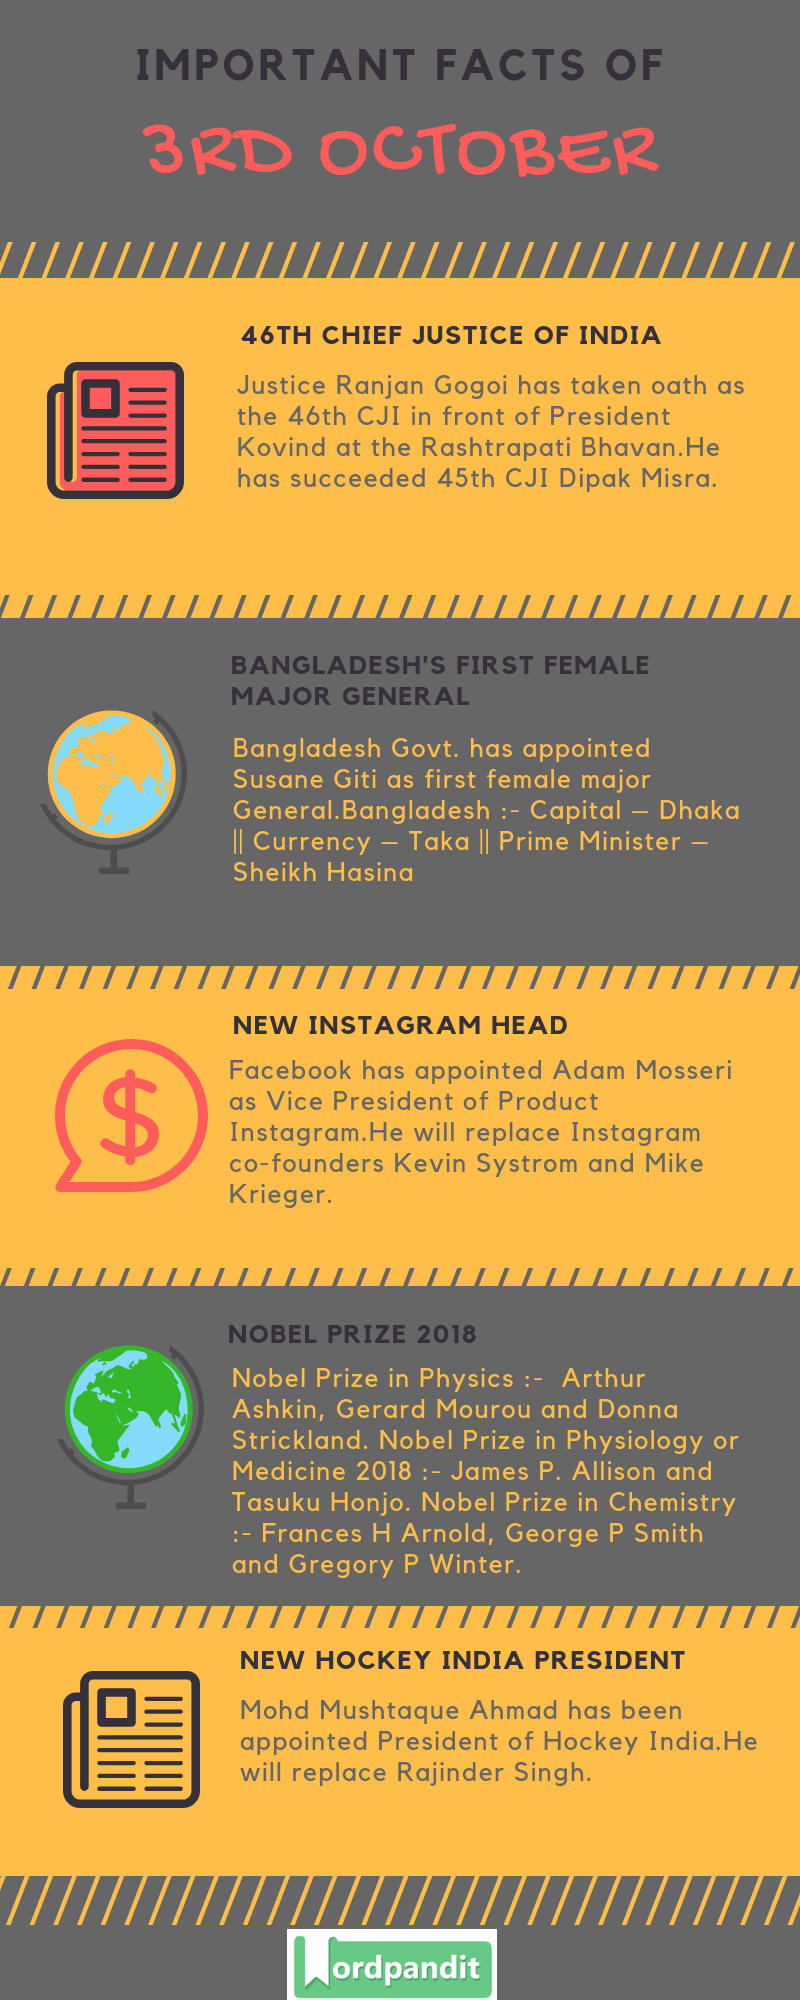 Daily Current Affairs 3 October 2018 Current Affairs Quiz 3 October 2018 Current Affairs Infographic